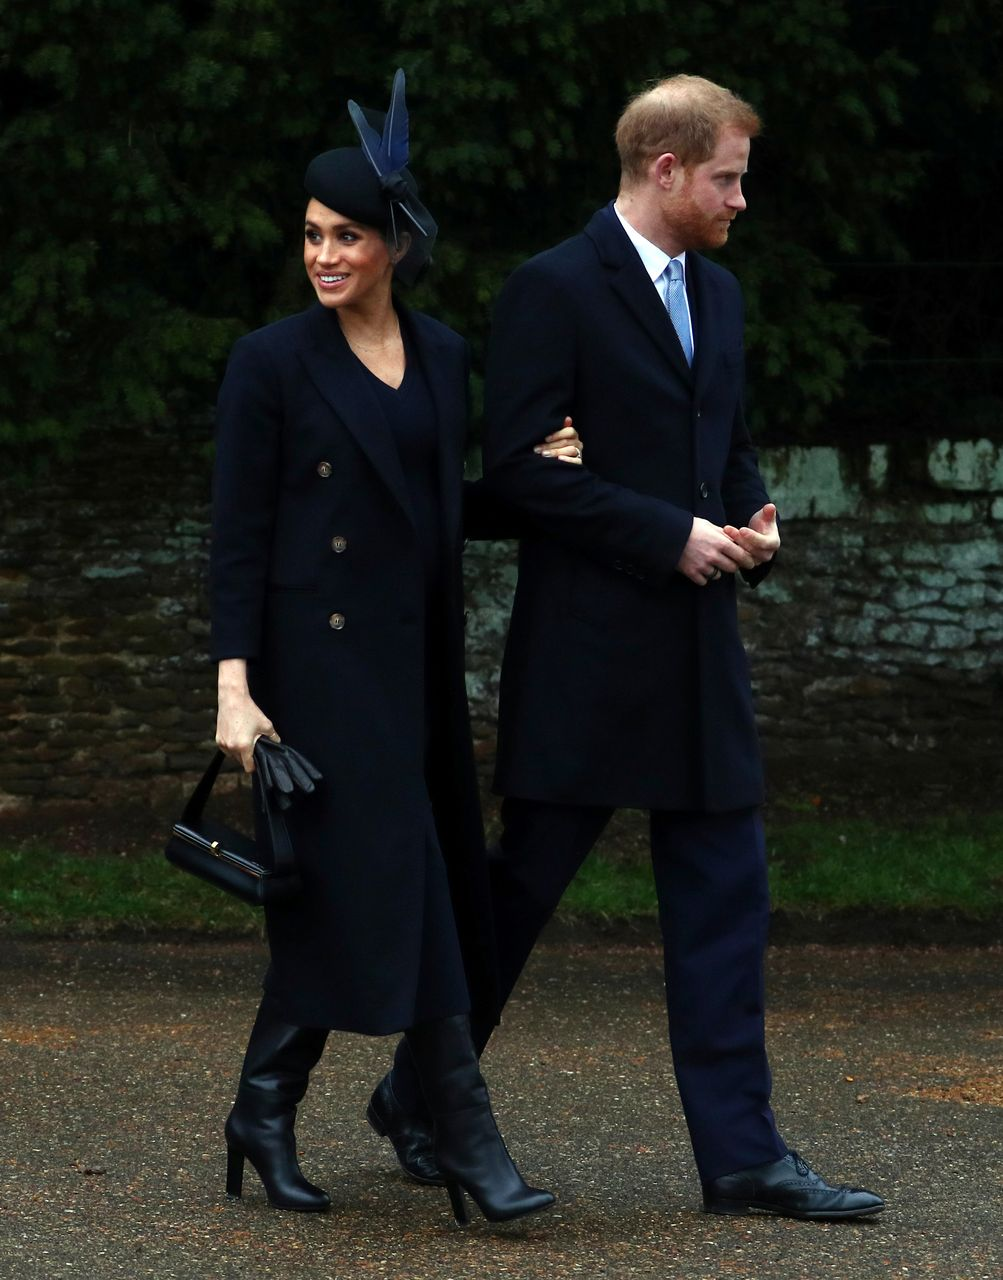 Britain's Prince Harry, Duke of Sussex and Meghan, Duchess of Sussex leave St Mary Magdalene's church after the Royal Family's Christmas Day service on the Sandringham estate in eastern England